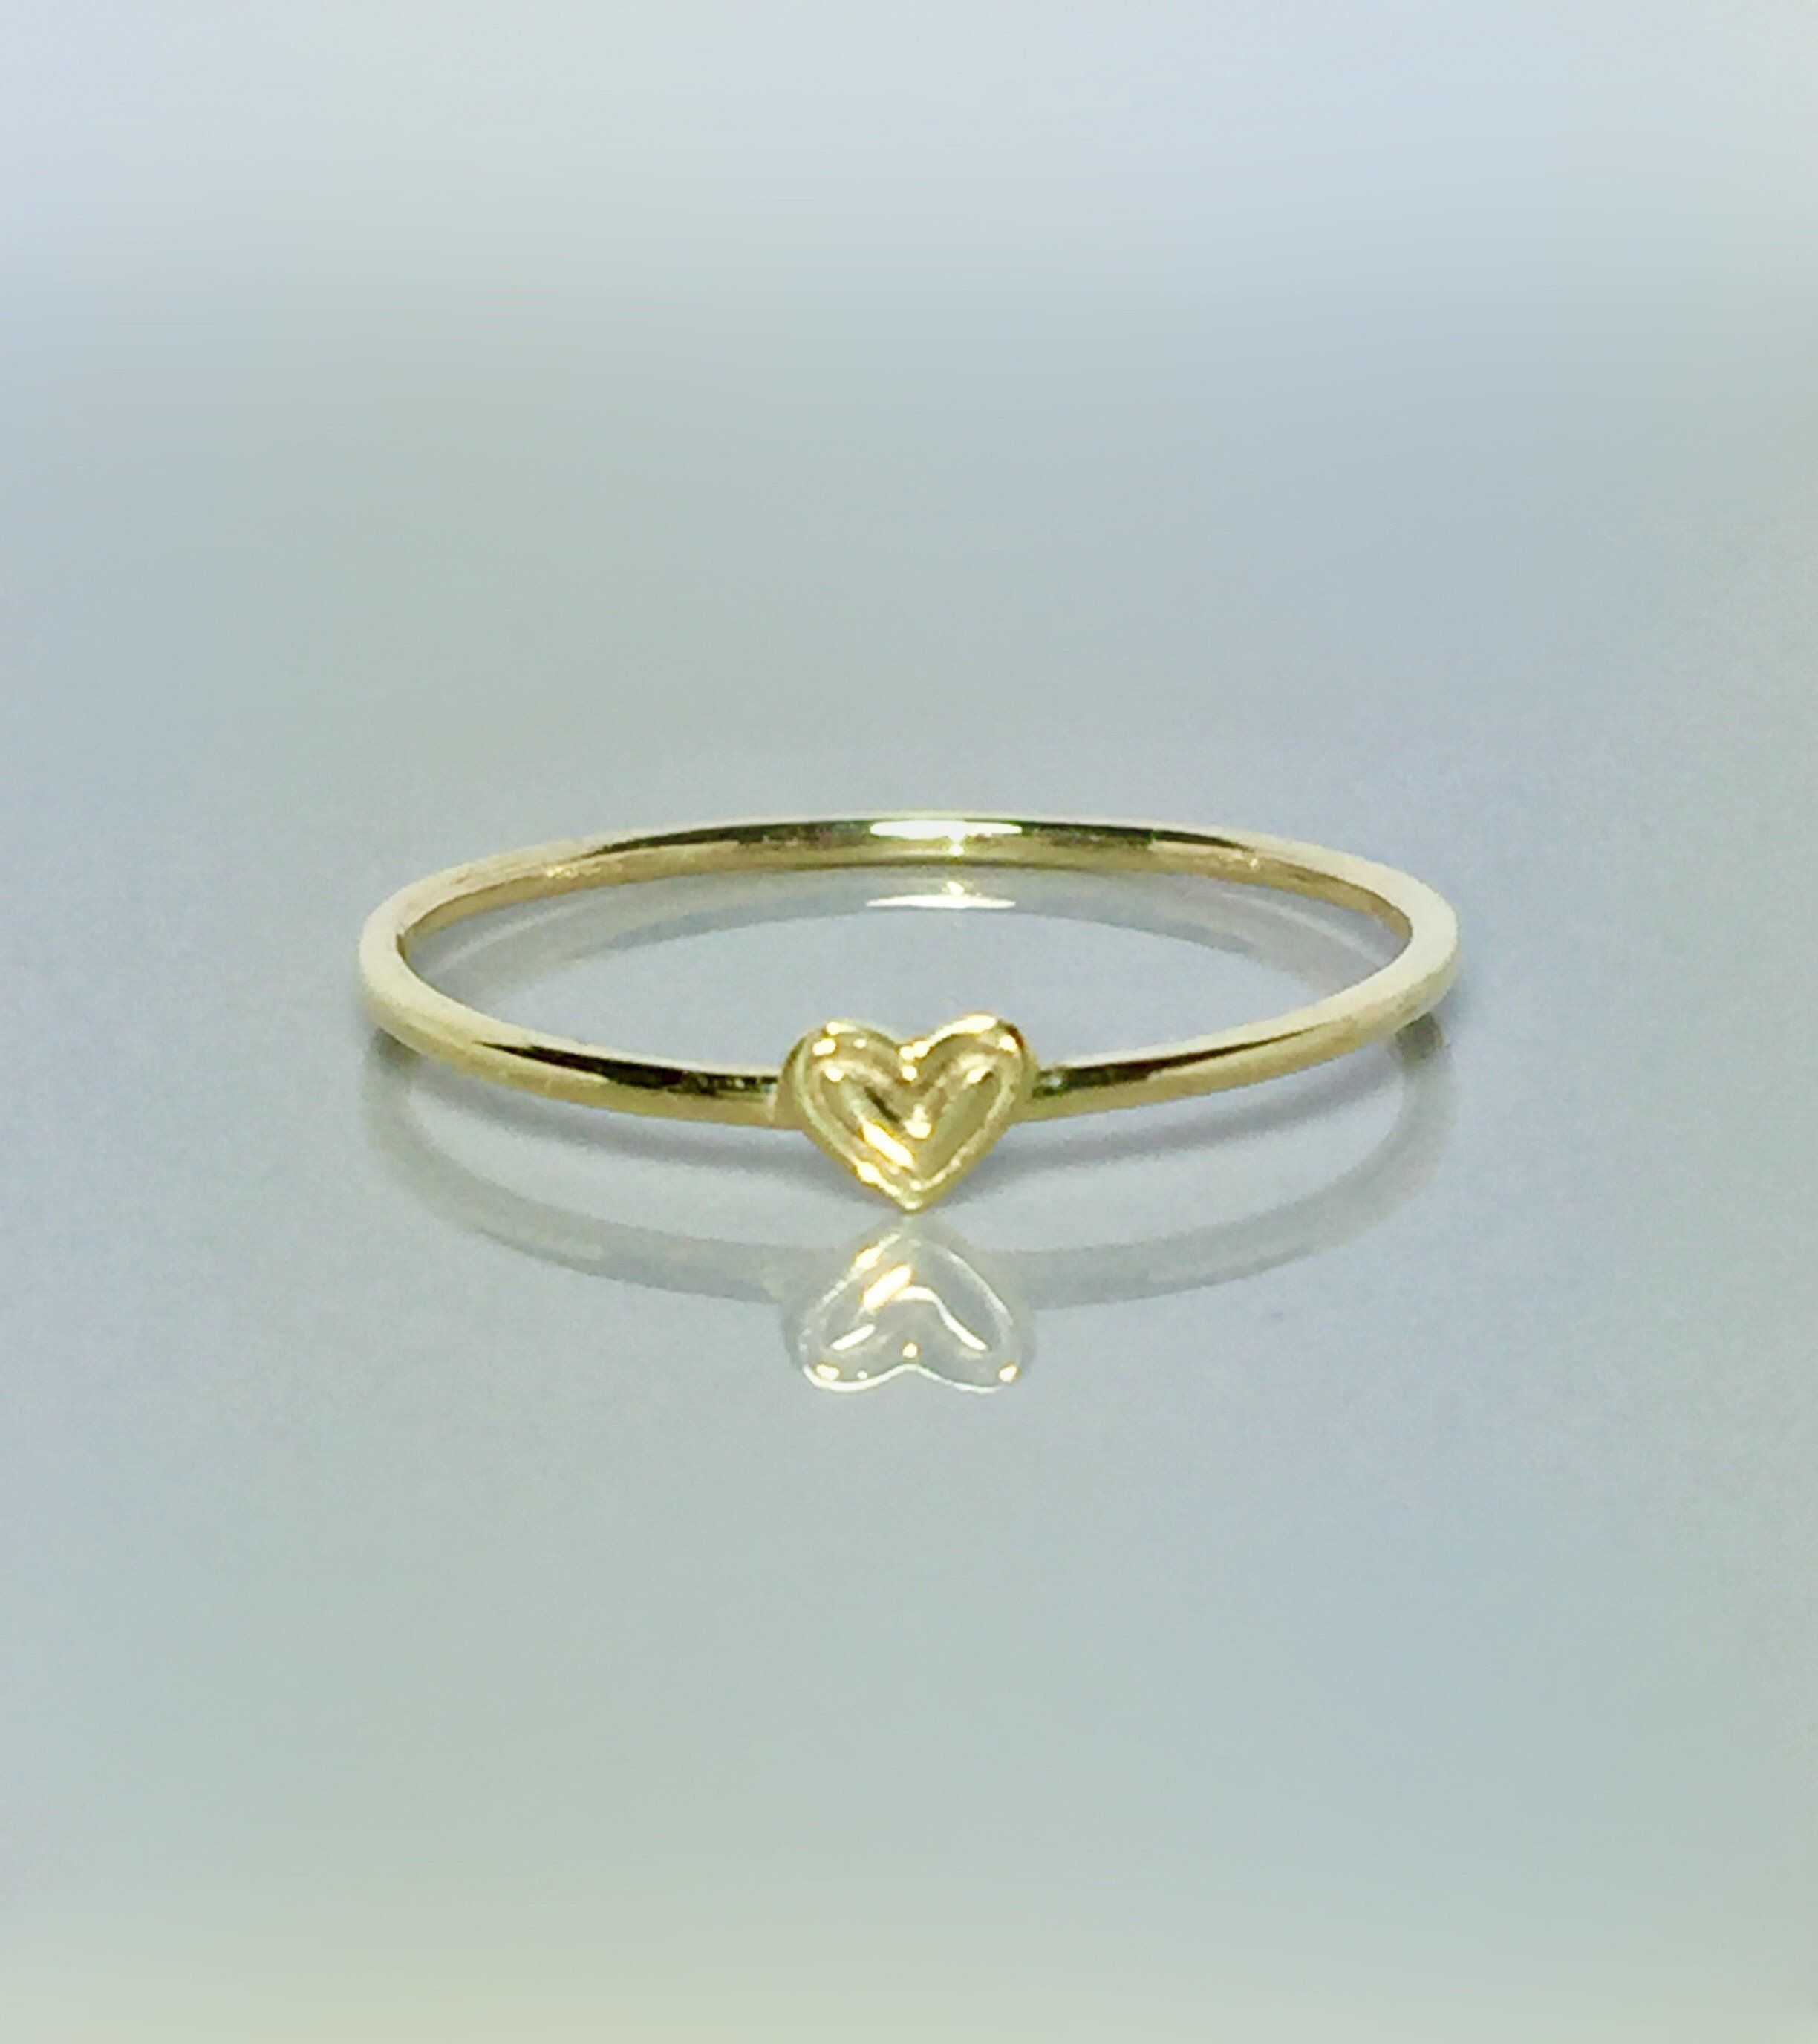 14k 10k Gold Heart Ring Rings For Girls Thin Gold Rings Simple Gold Rings Minimalist Rings Gold Heart Ring Etsy Gold Ring Sterling Silver Jewelry Rings